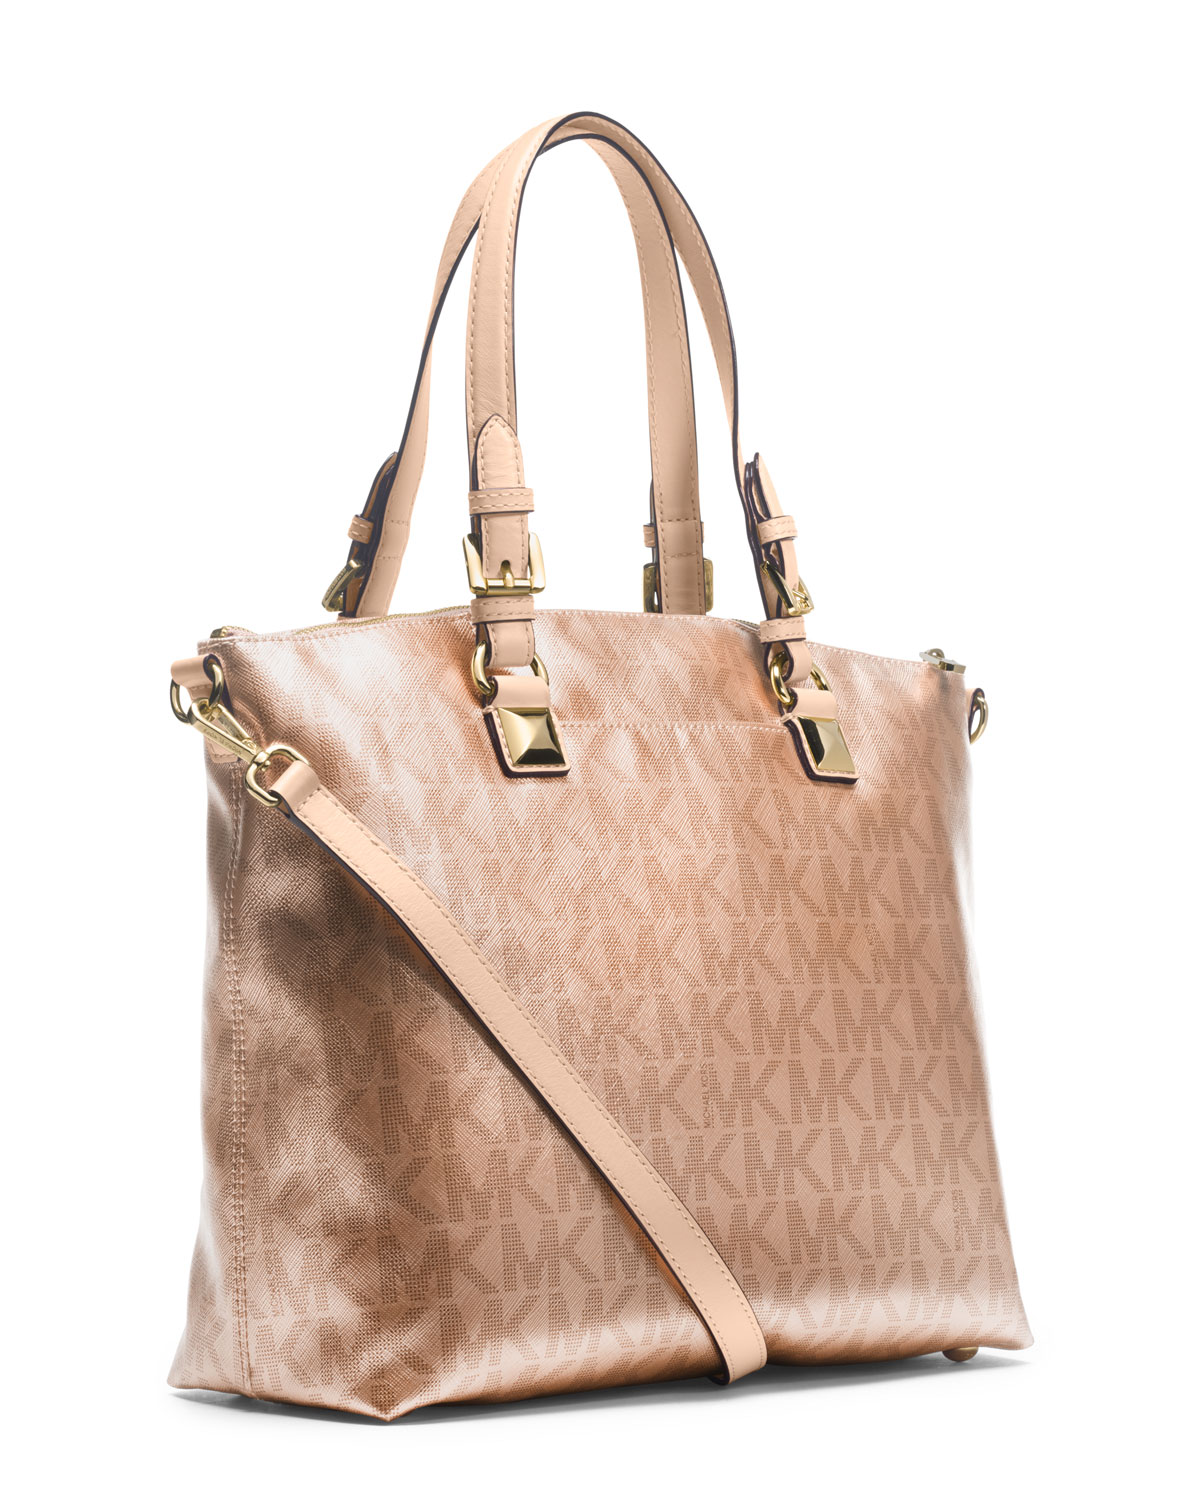 37013e7cea0d ... pale gold fc39e 3f0d0; czech lyst michael kors michael jet set metallic  multi function satchel in pink e44a3 59148